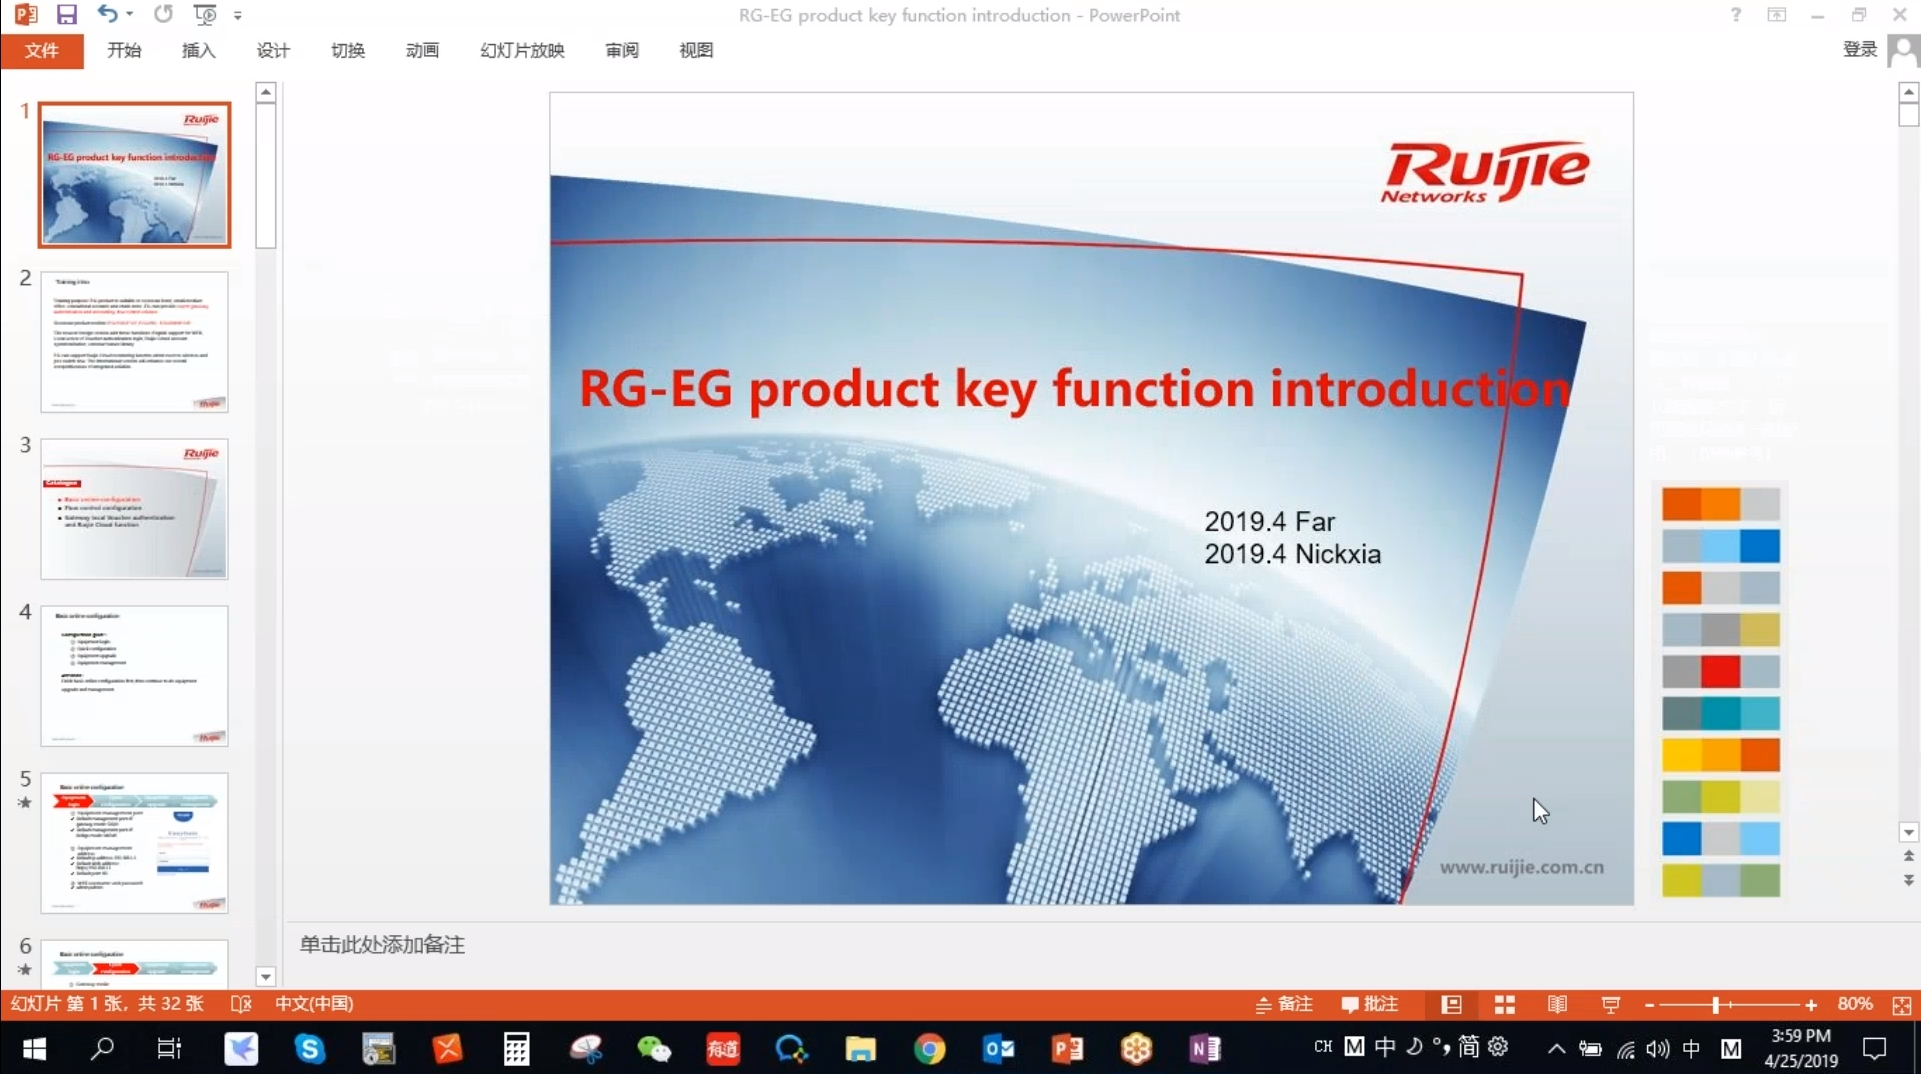 EG Product Key Function Introduction